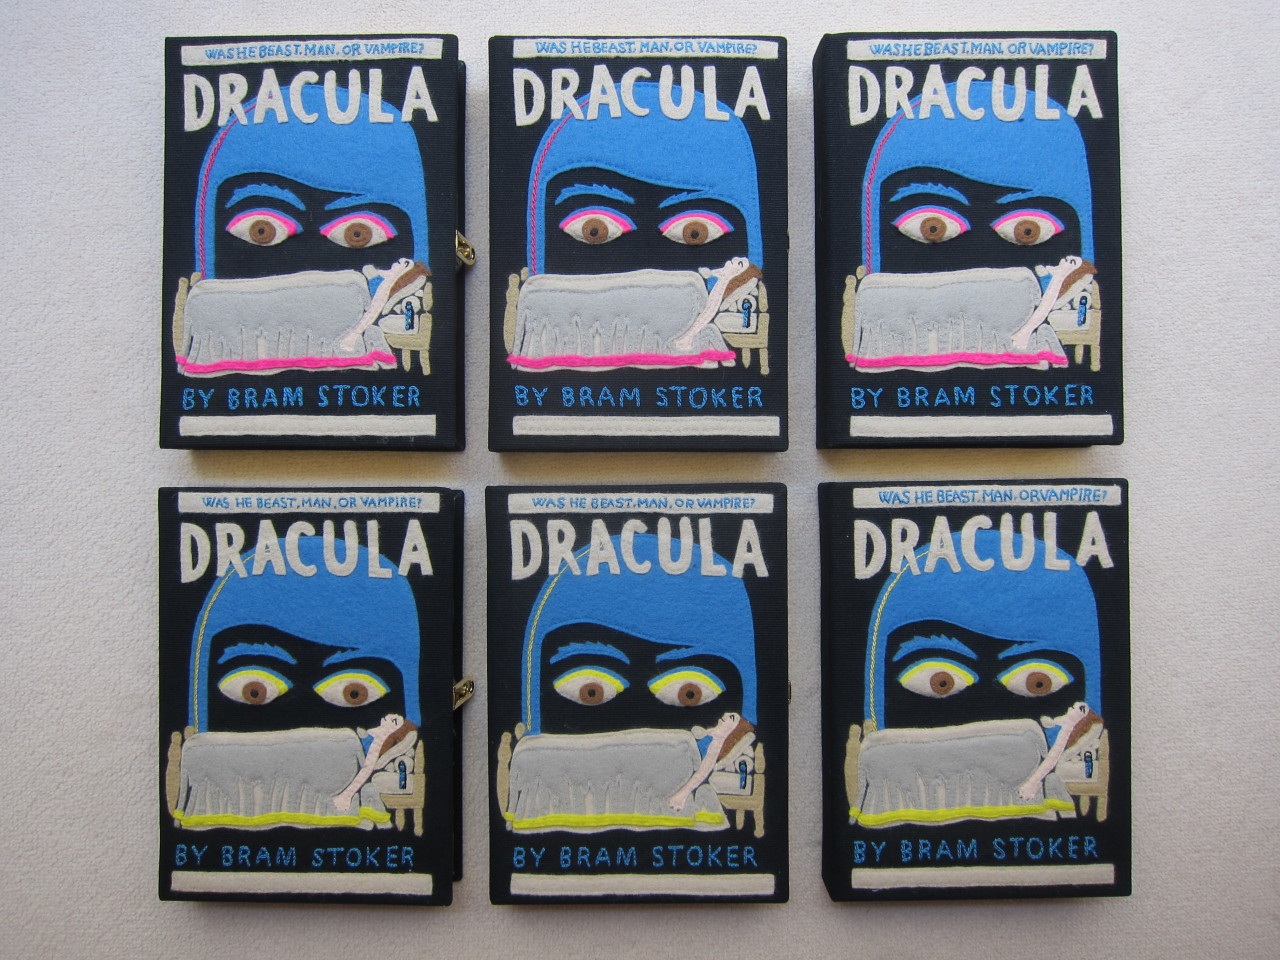 Dracula book-clutch by Olympia Le-Tan.